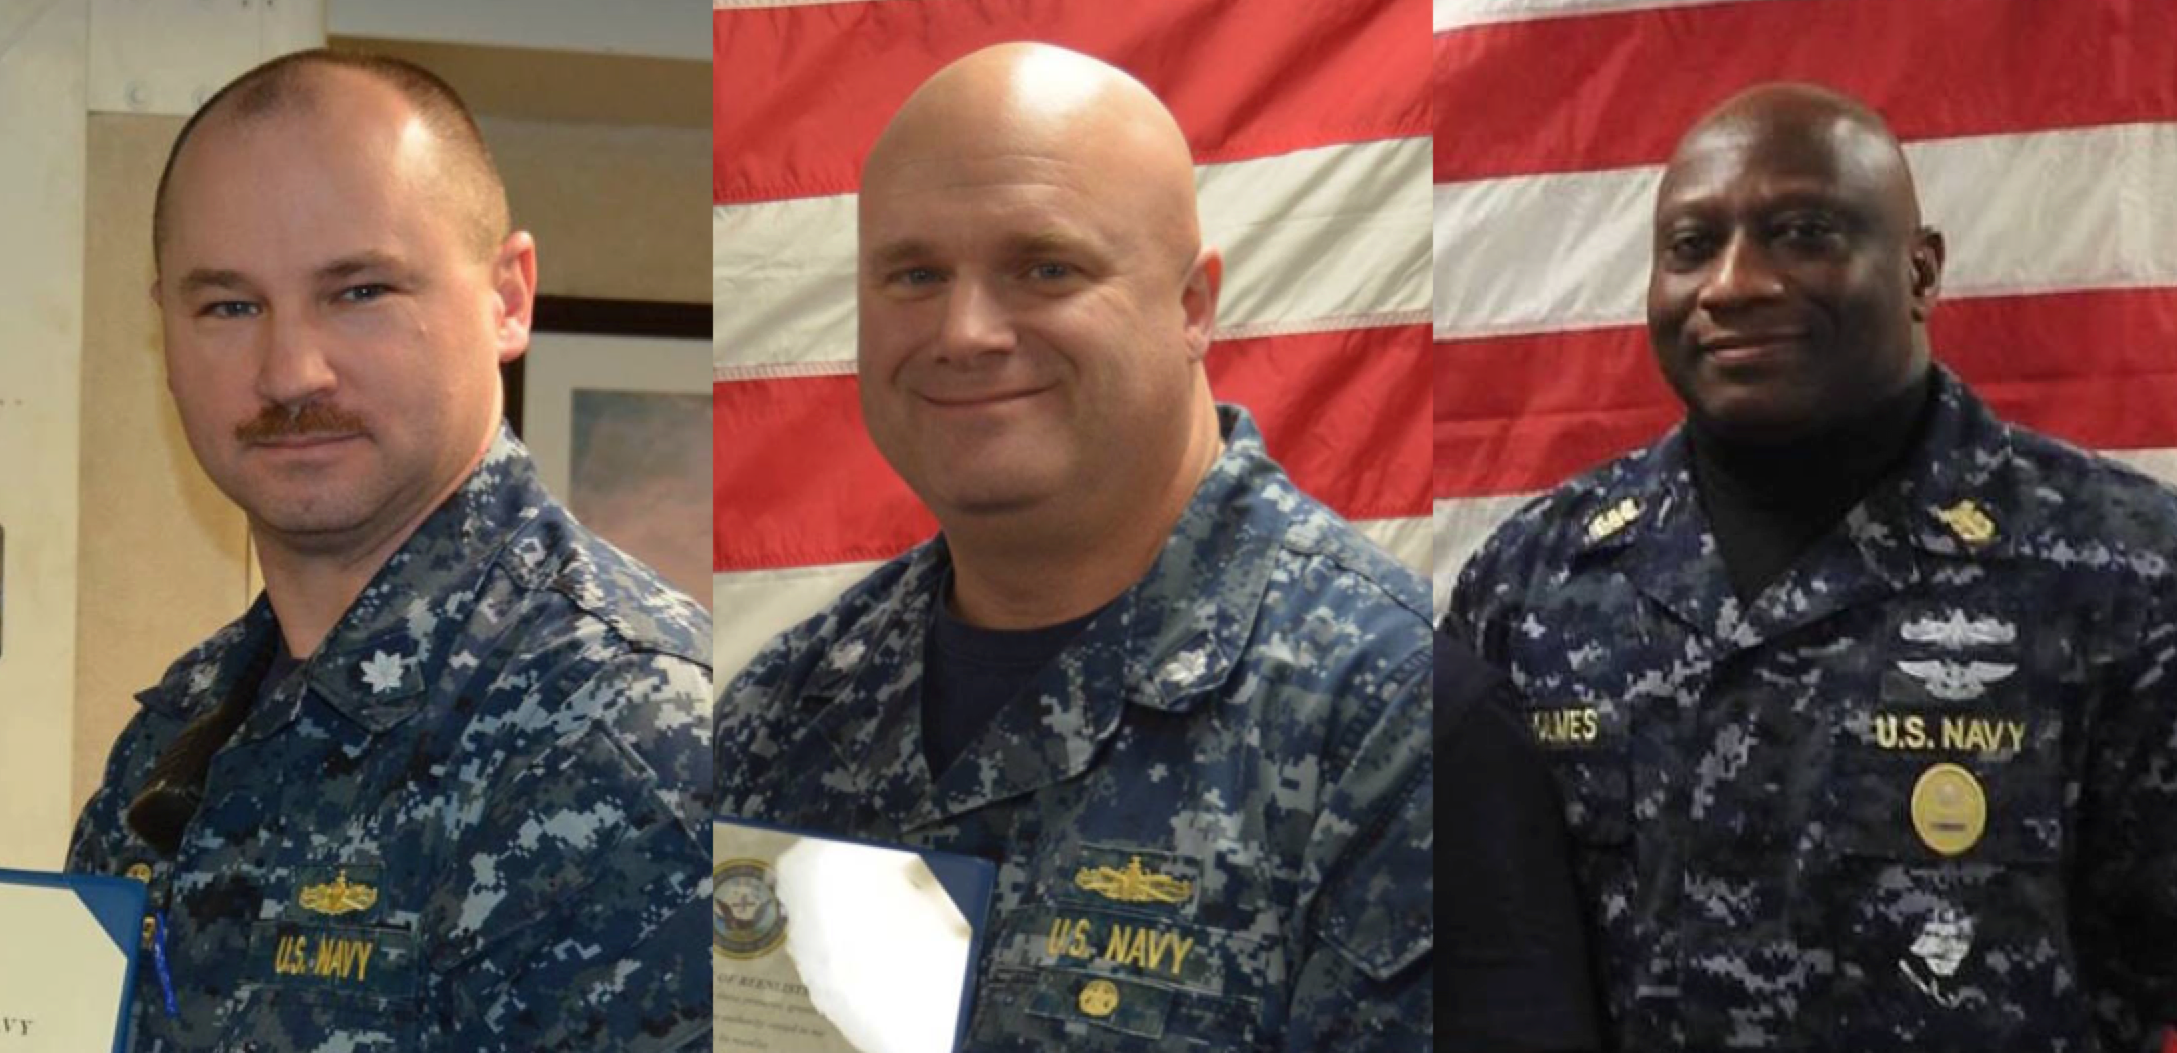 Former Bainbridge CO Cmdr. Sean Ronger, XO Cmdr. Brandon Murray and CMC Richard Holmes were releieved from their roles on the ship on April 8, 2016, sources tell USNI News